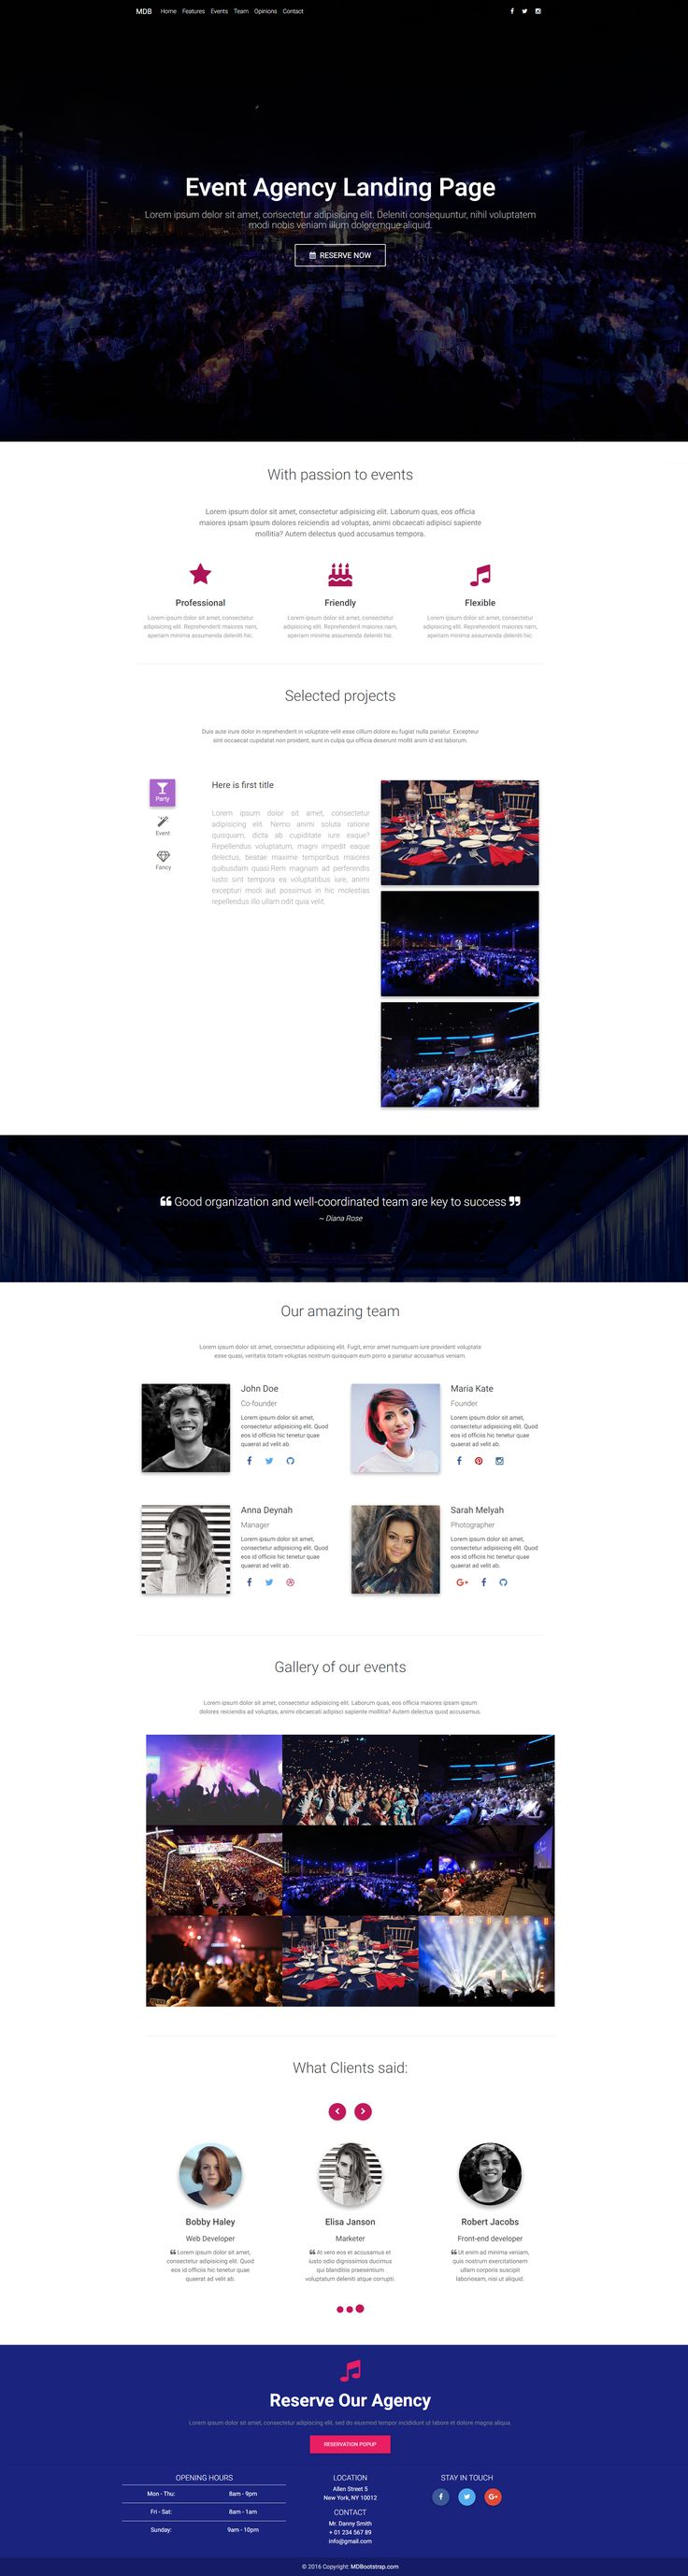 Material Design event agency landing template based on Bootstrap 4